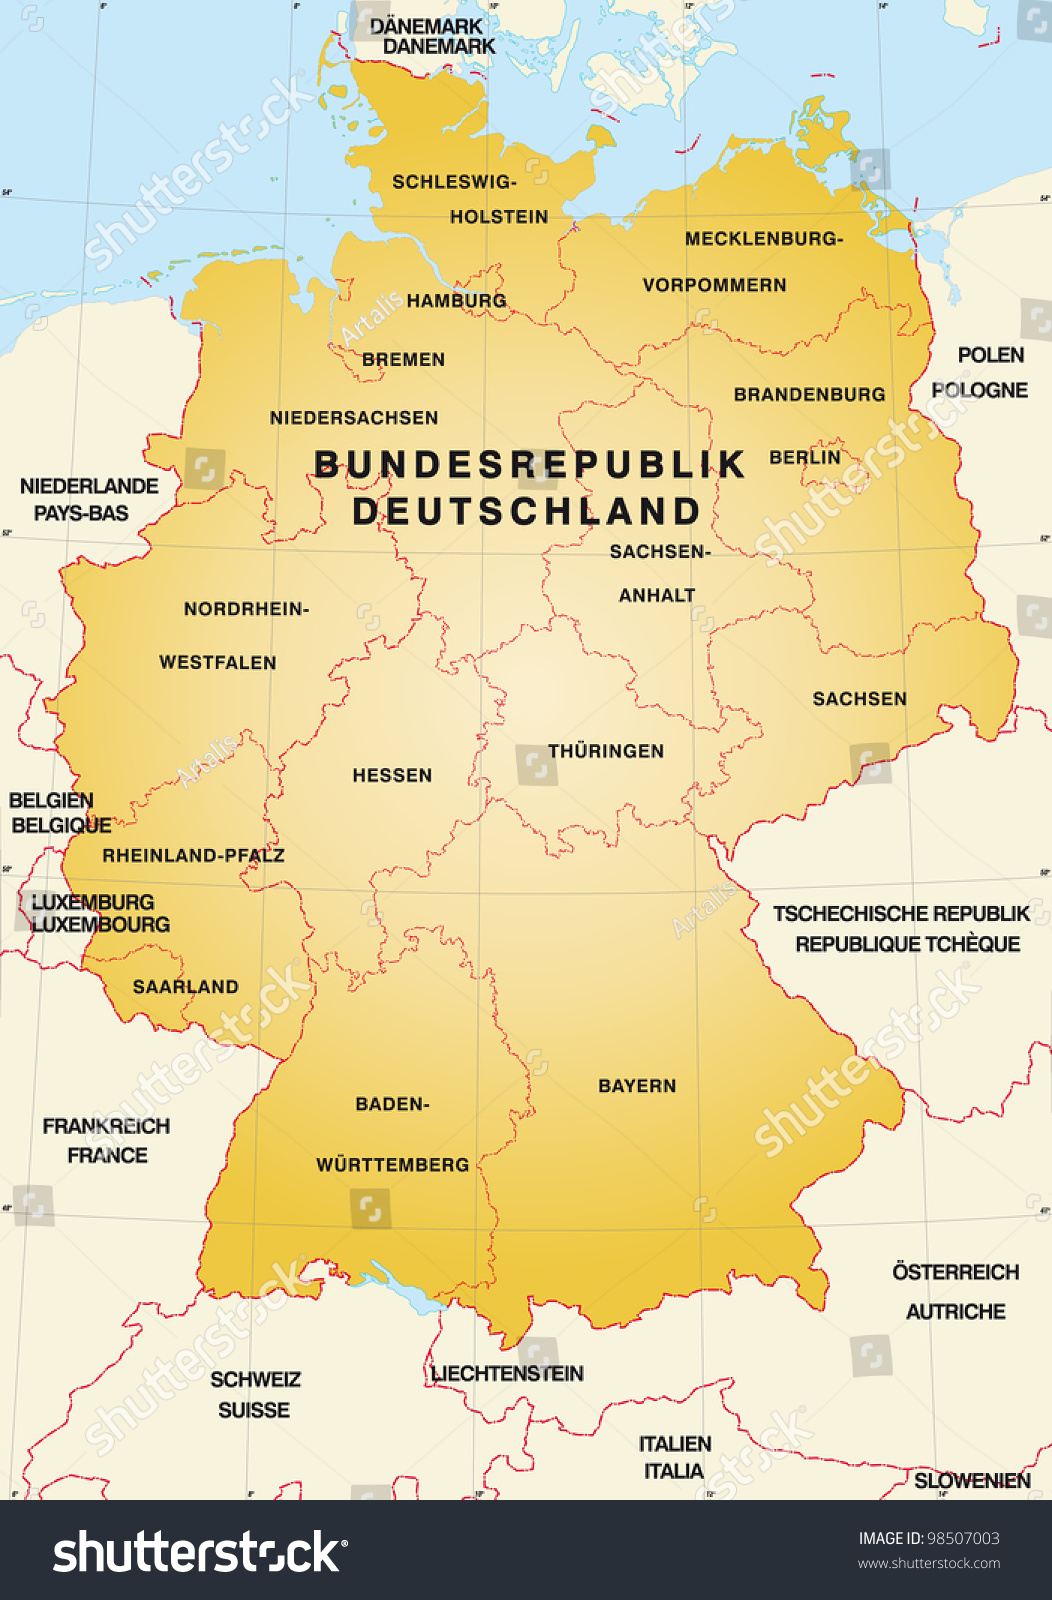 Map Germany Neighboring Countries Stock Illustration - Germany map neighbouring countries